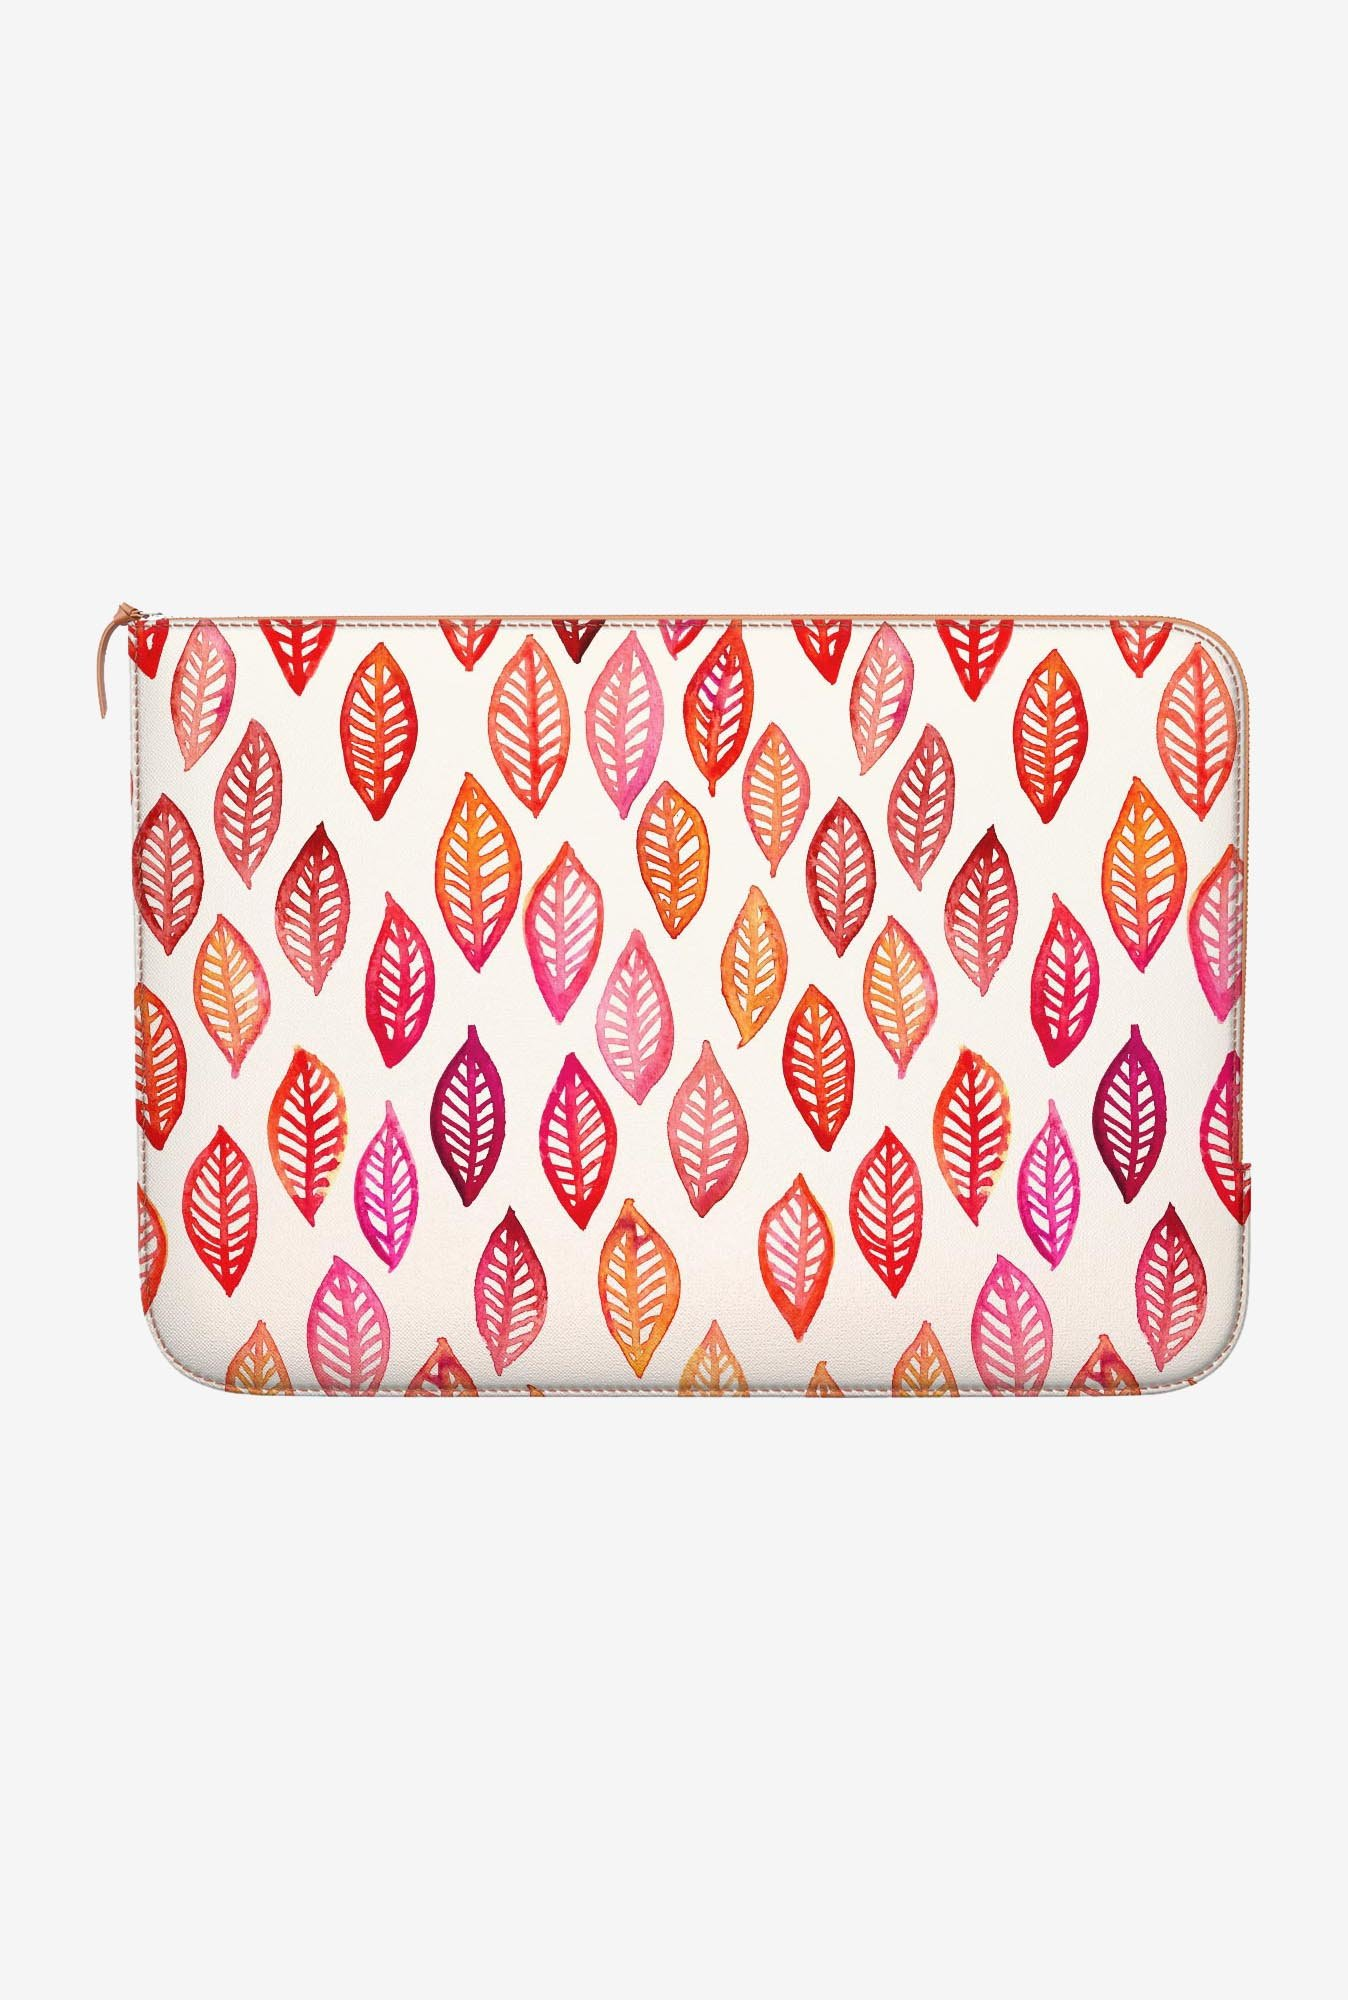 DailyObjects Autumn Leaves MacBook Air 11 Zippered Sleeve